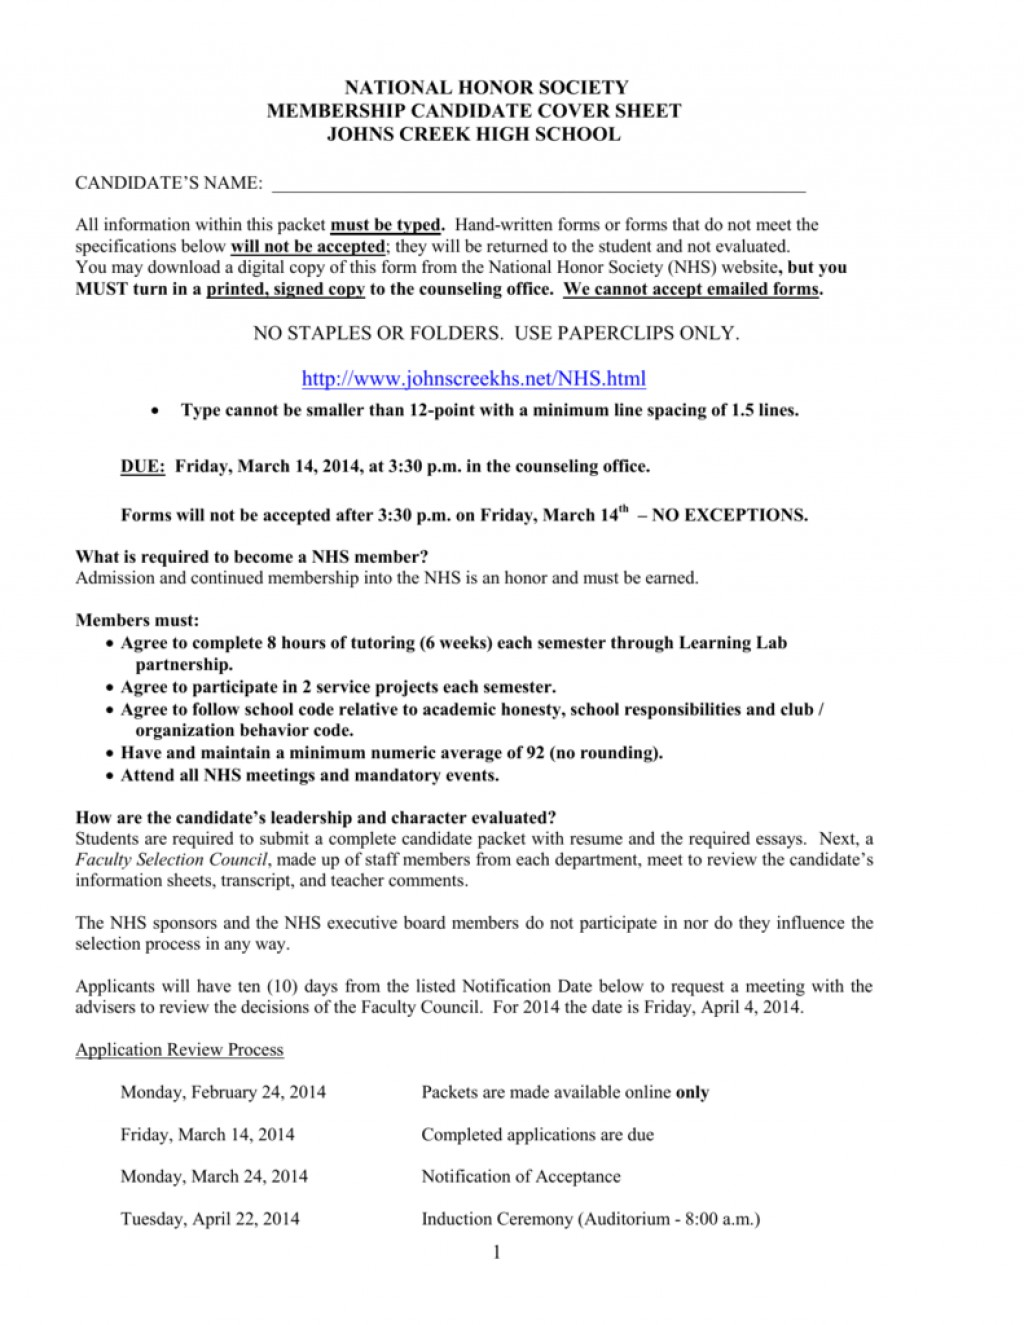 025 008823851 1 National Honors Society Essay Unique Junior Honor Leadership Sample Large